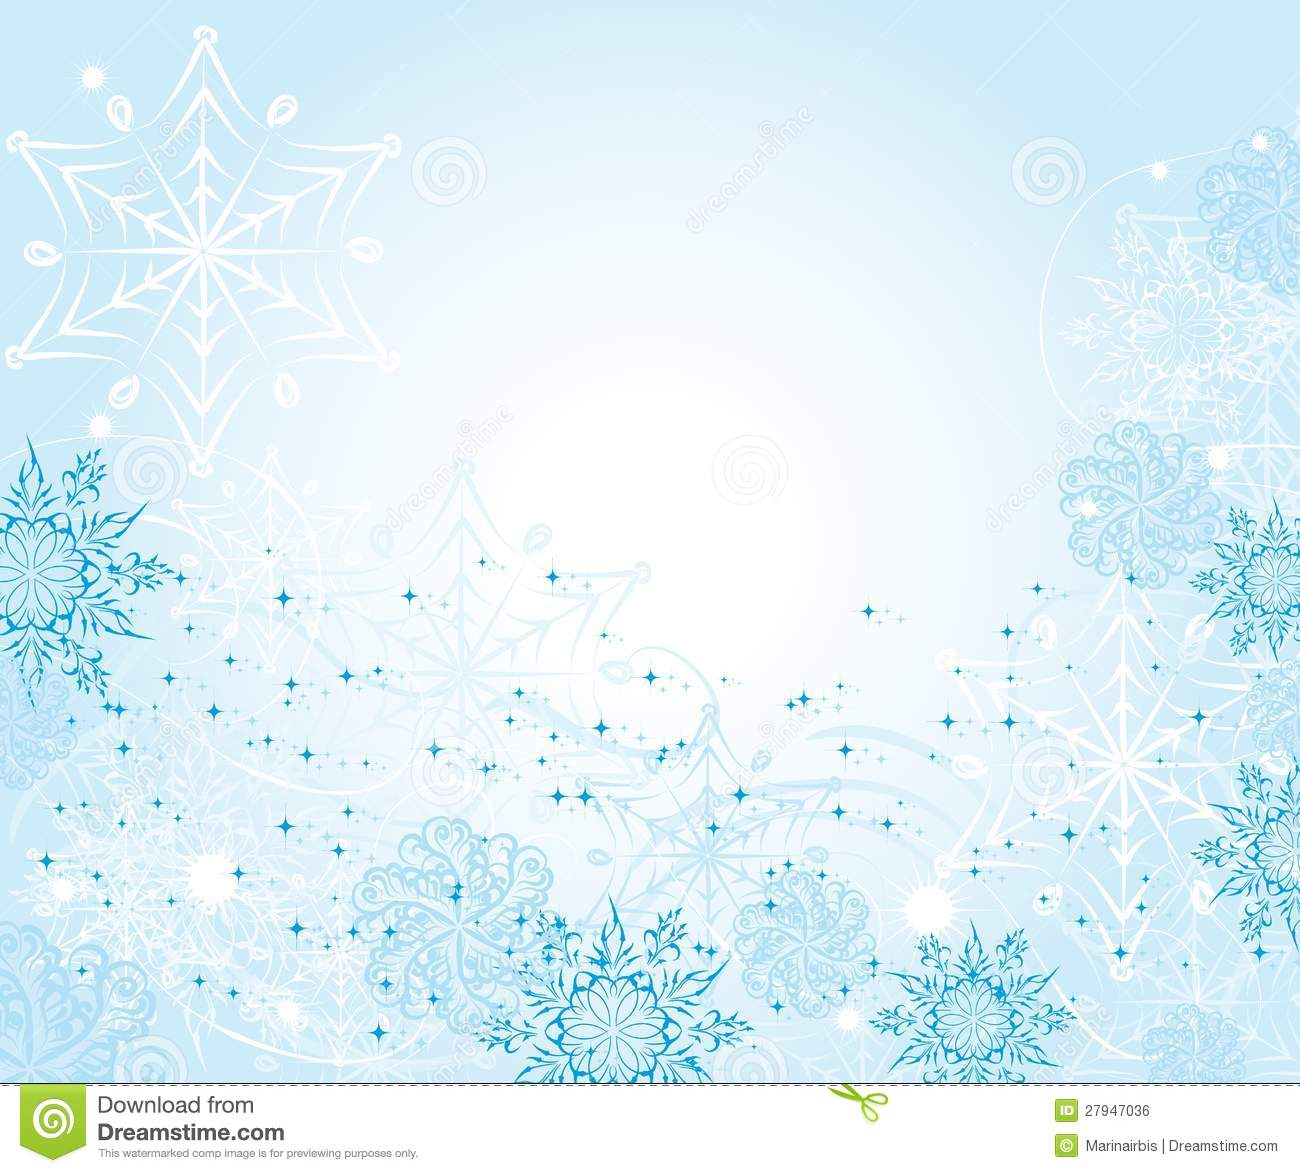 Abstract Gentle Winter Frame With Snowflakes Illustration 27947036 ...